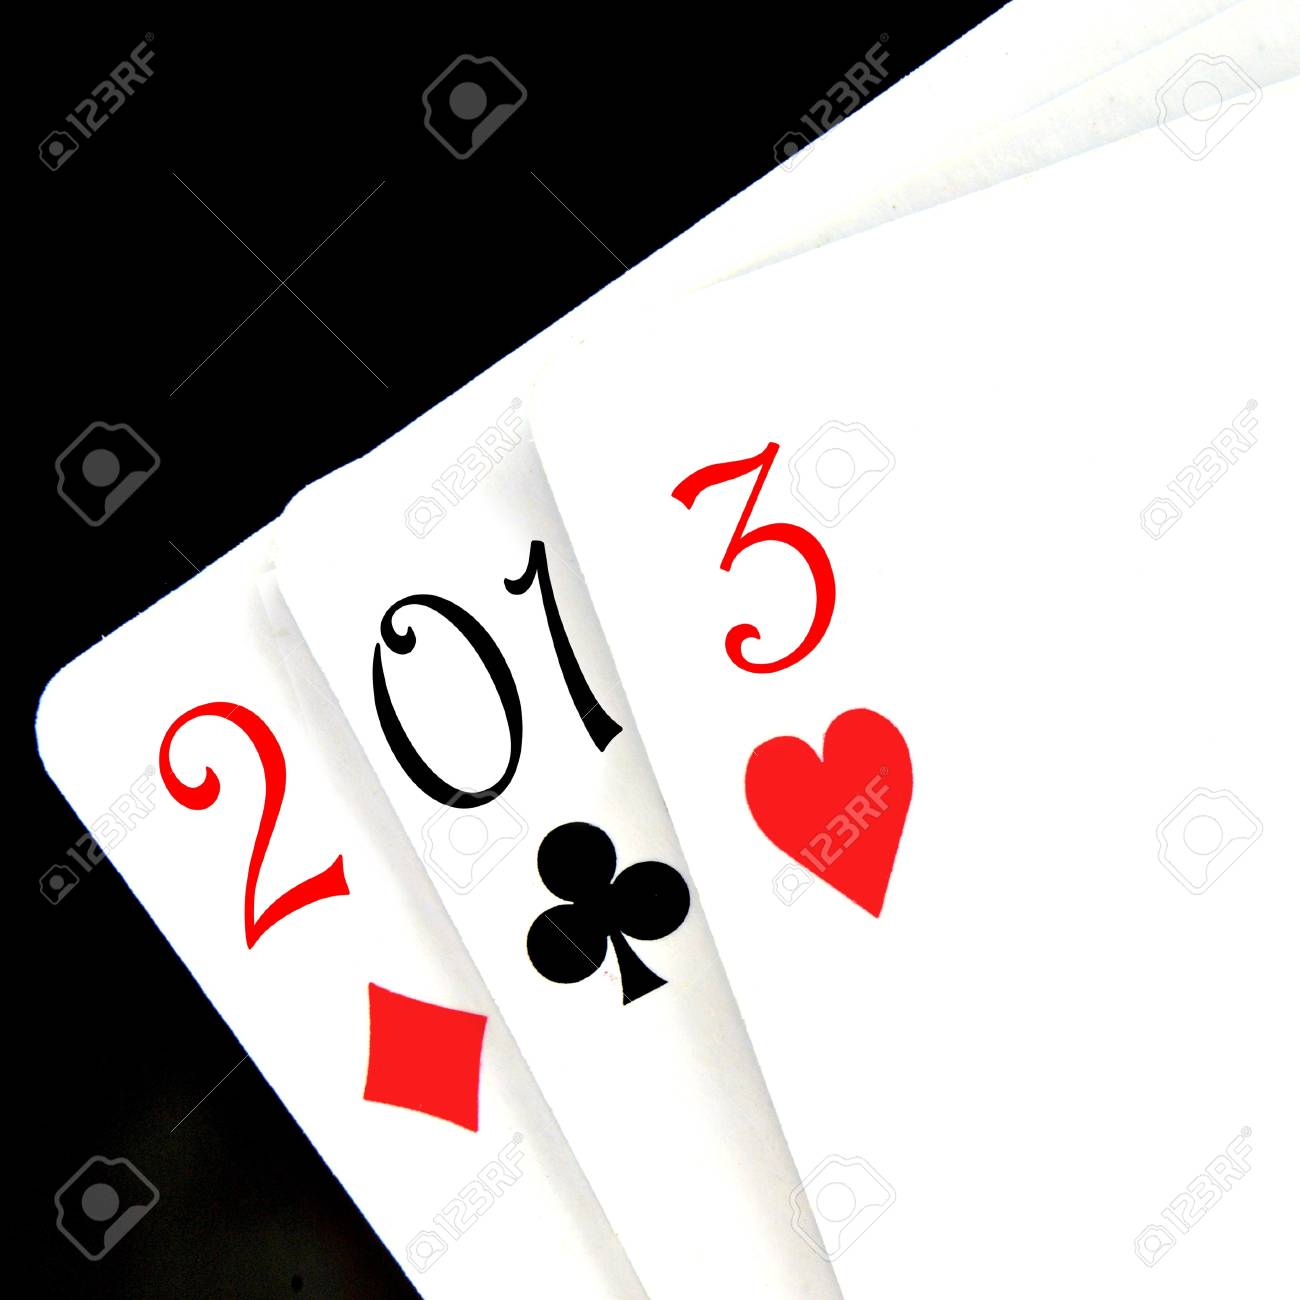 2013, the new year, written with playing cards Stock Photo - 16169795